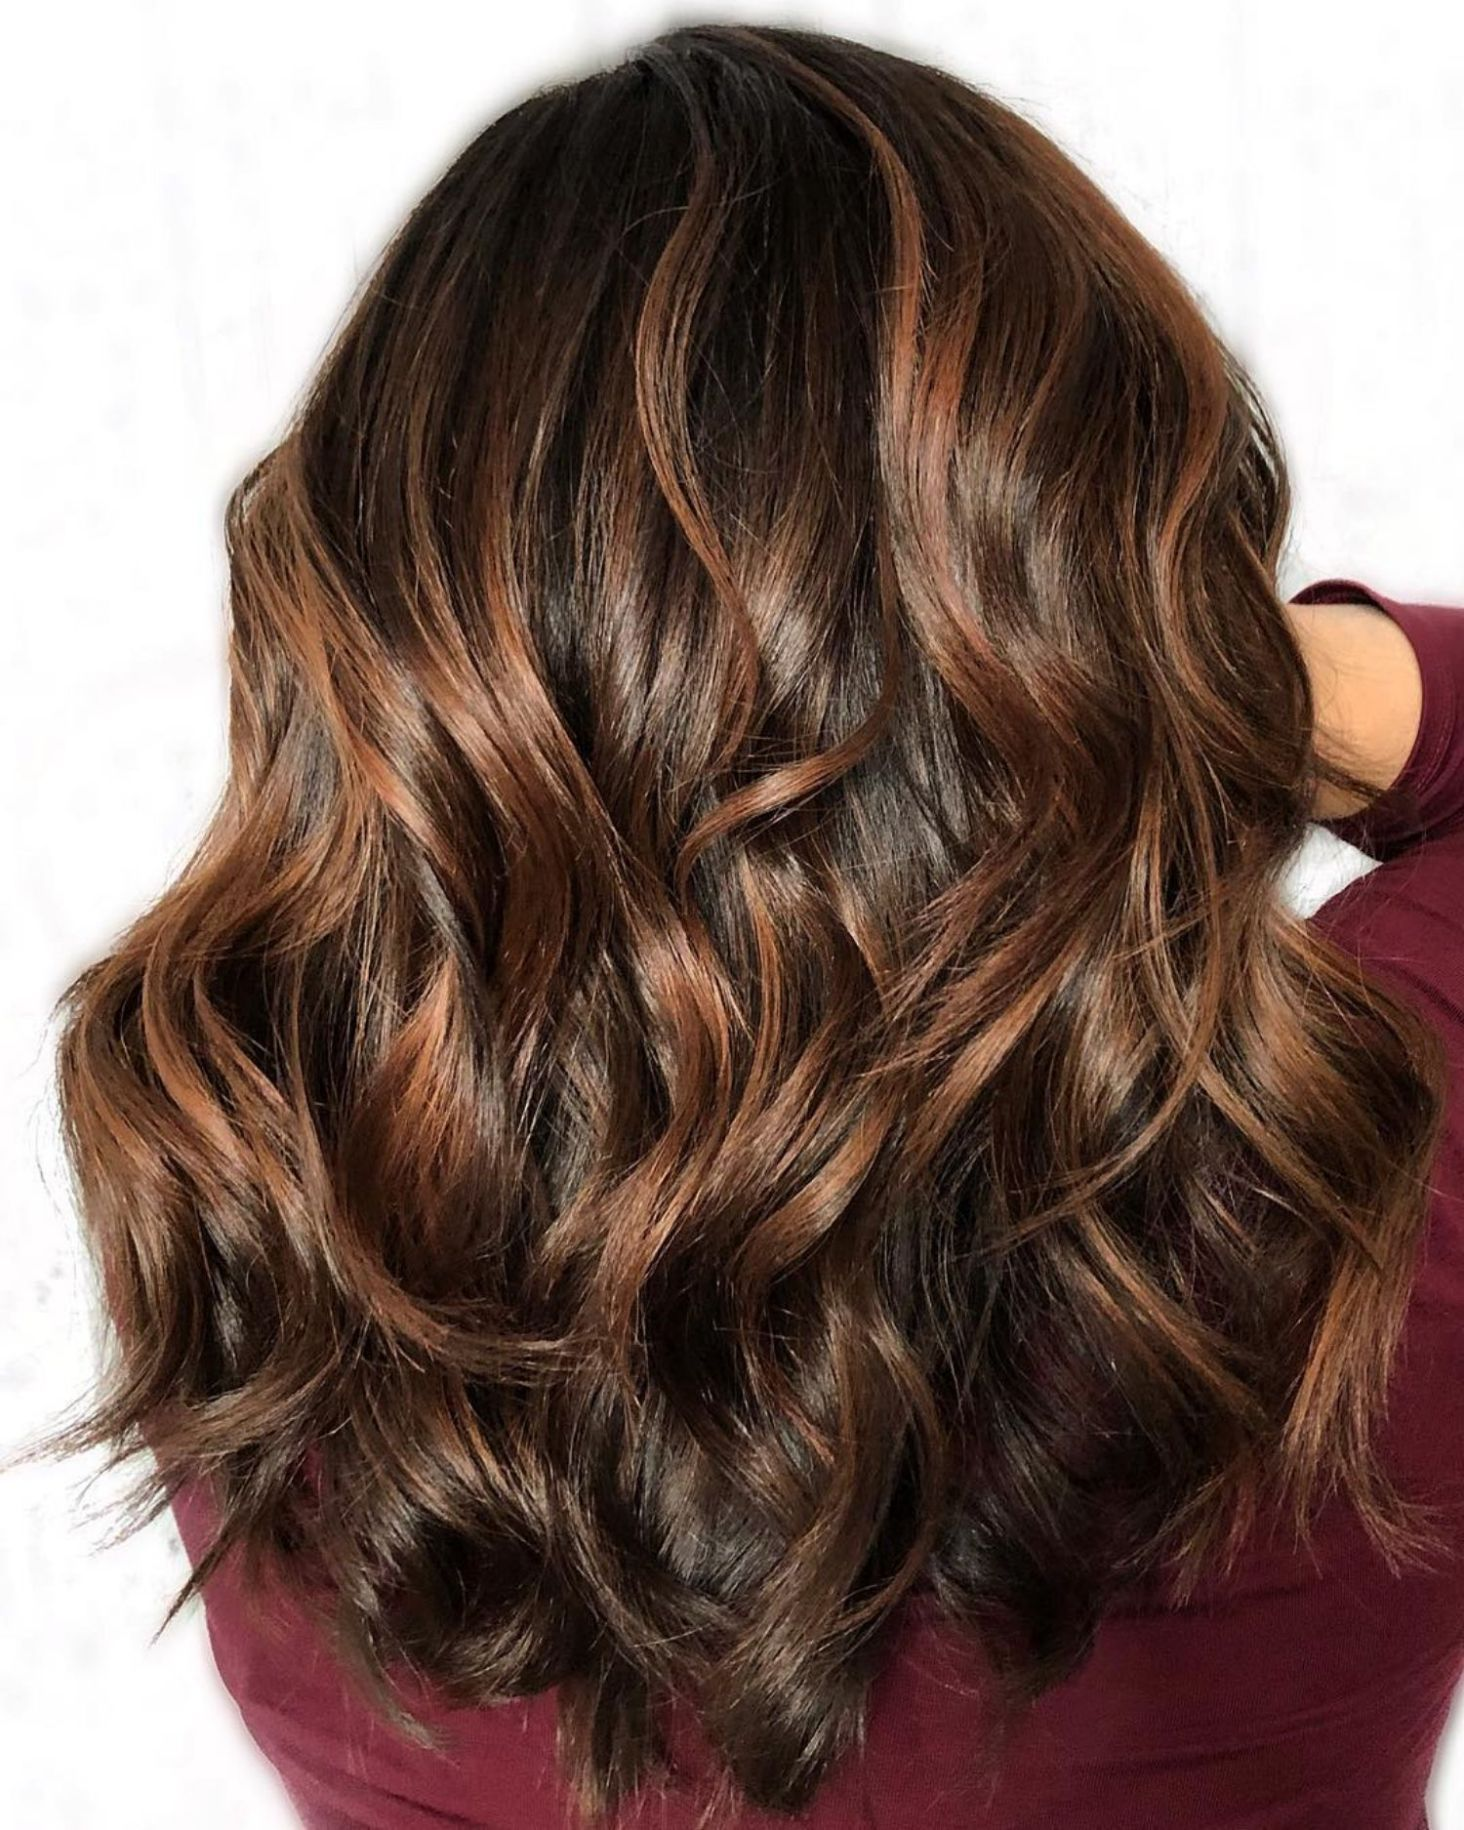 with caramel highlights